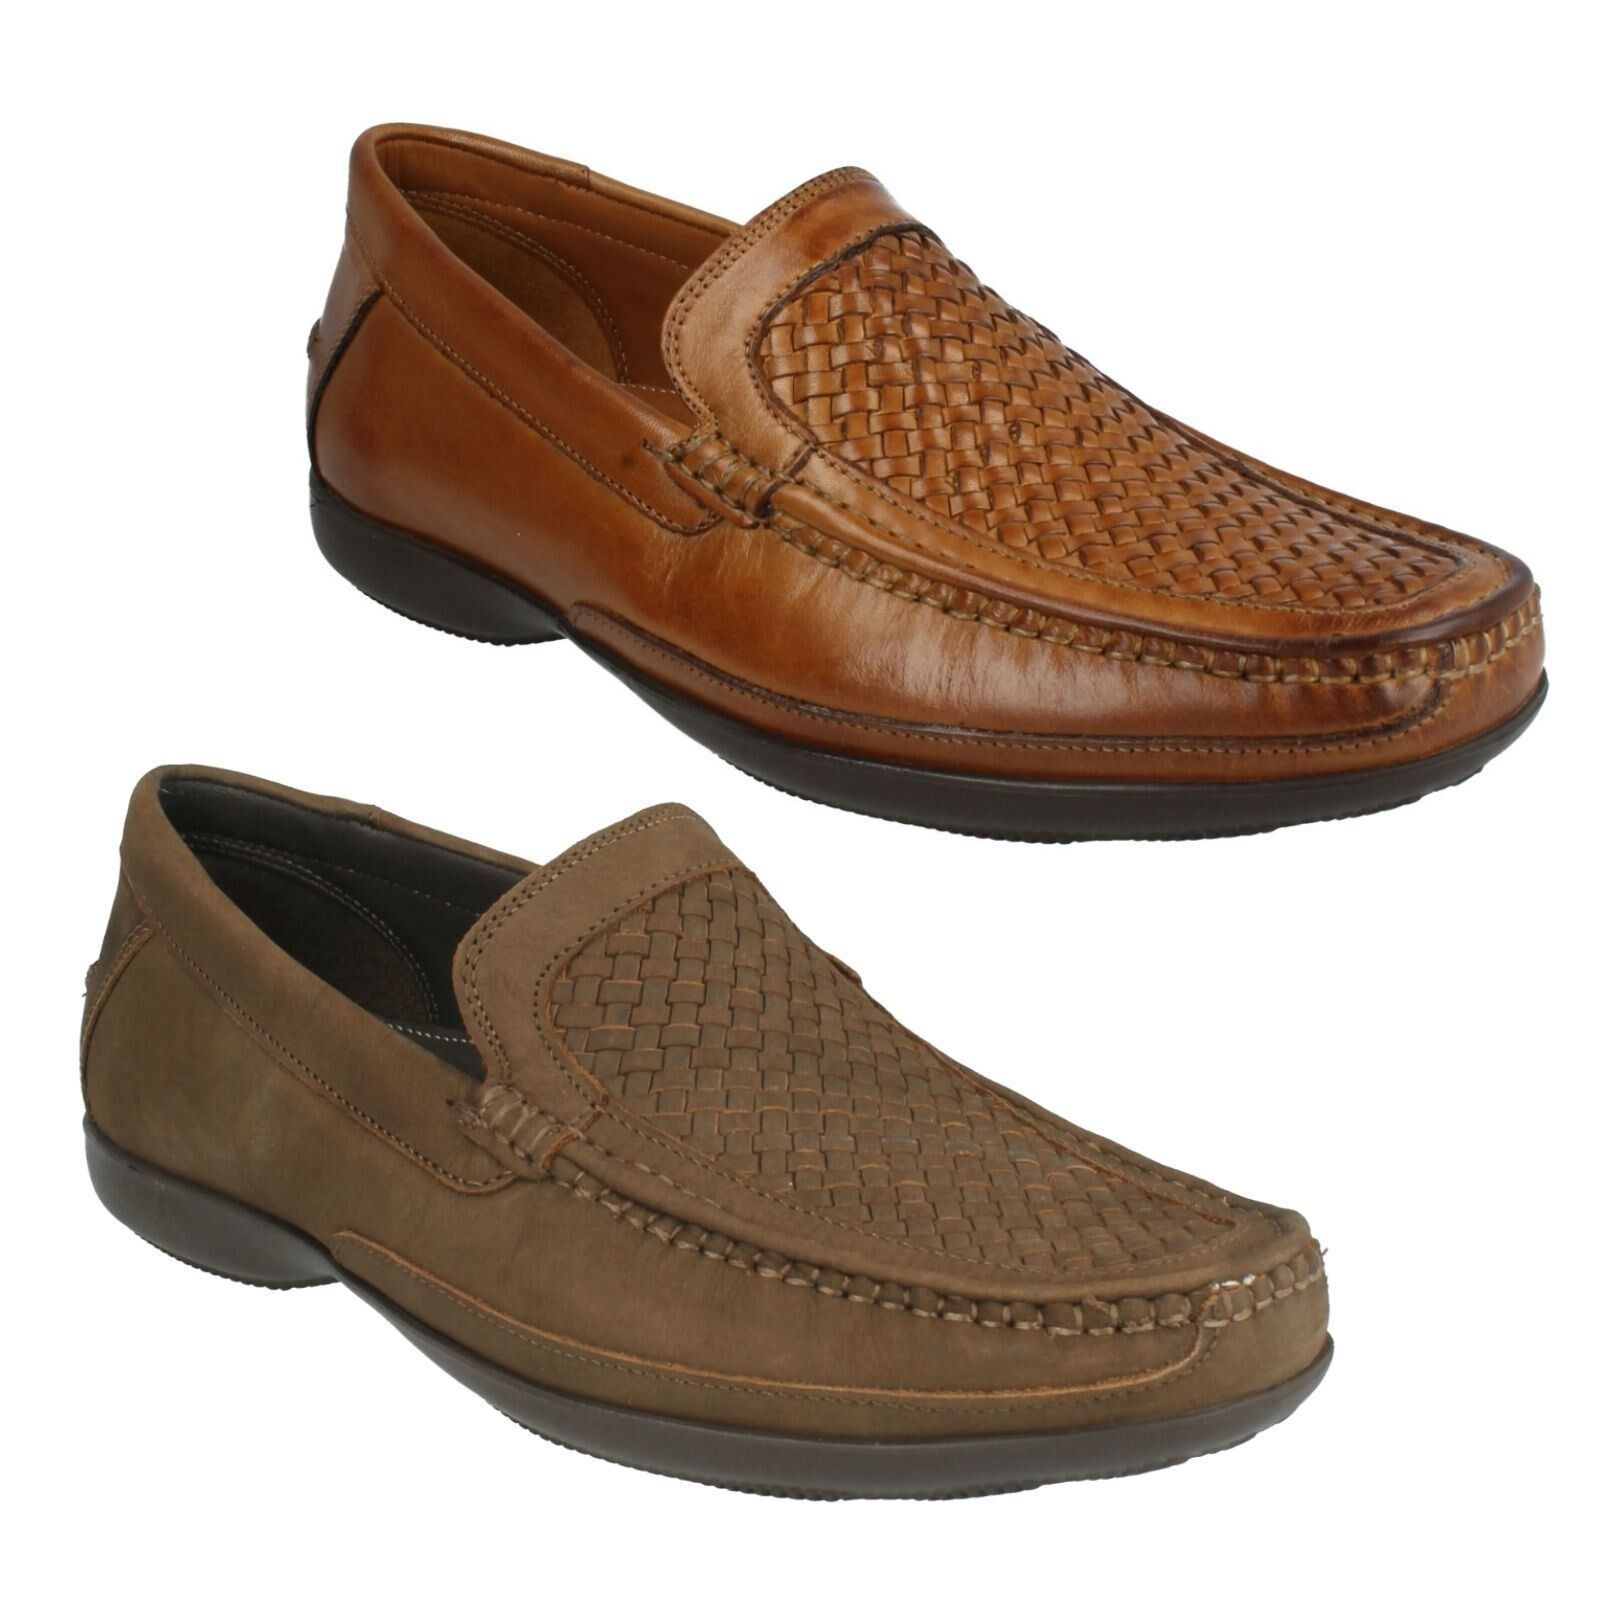 MENS CLARKS FINER WEAVE WOVEN LOAFERS NUBUCK SMART LEATHER SLIP ON FORMAL SMART NUBUCK SHOES aa2512